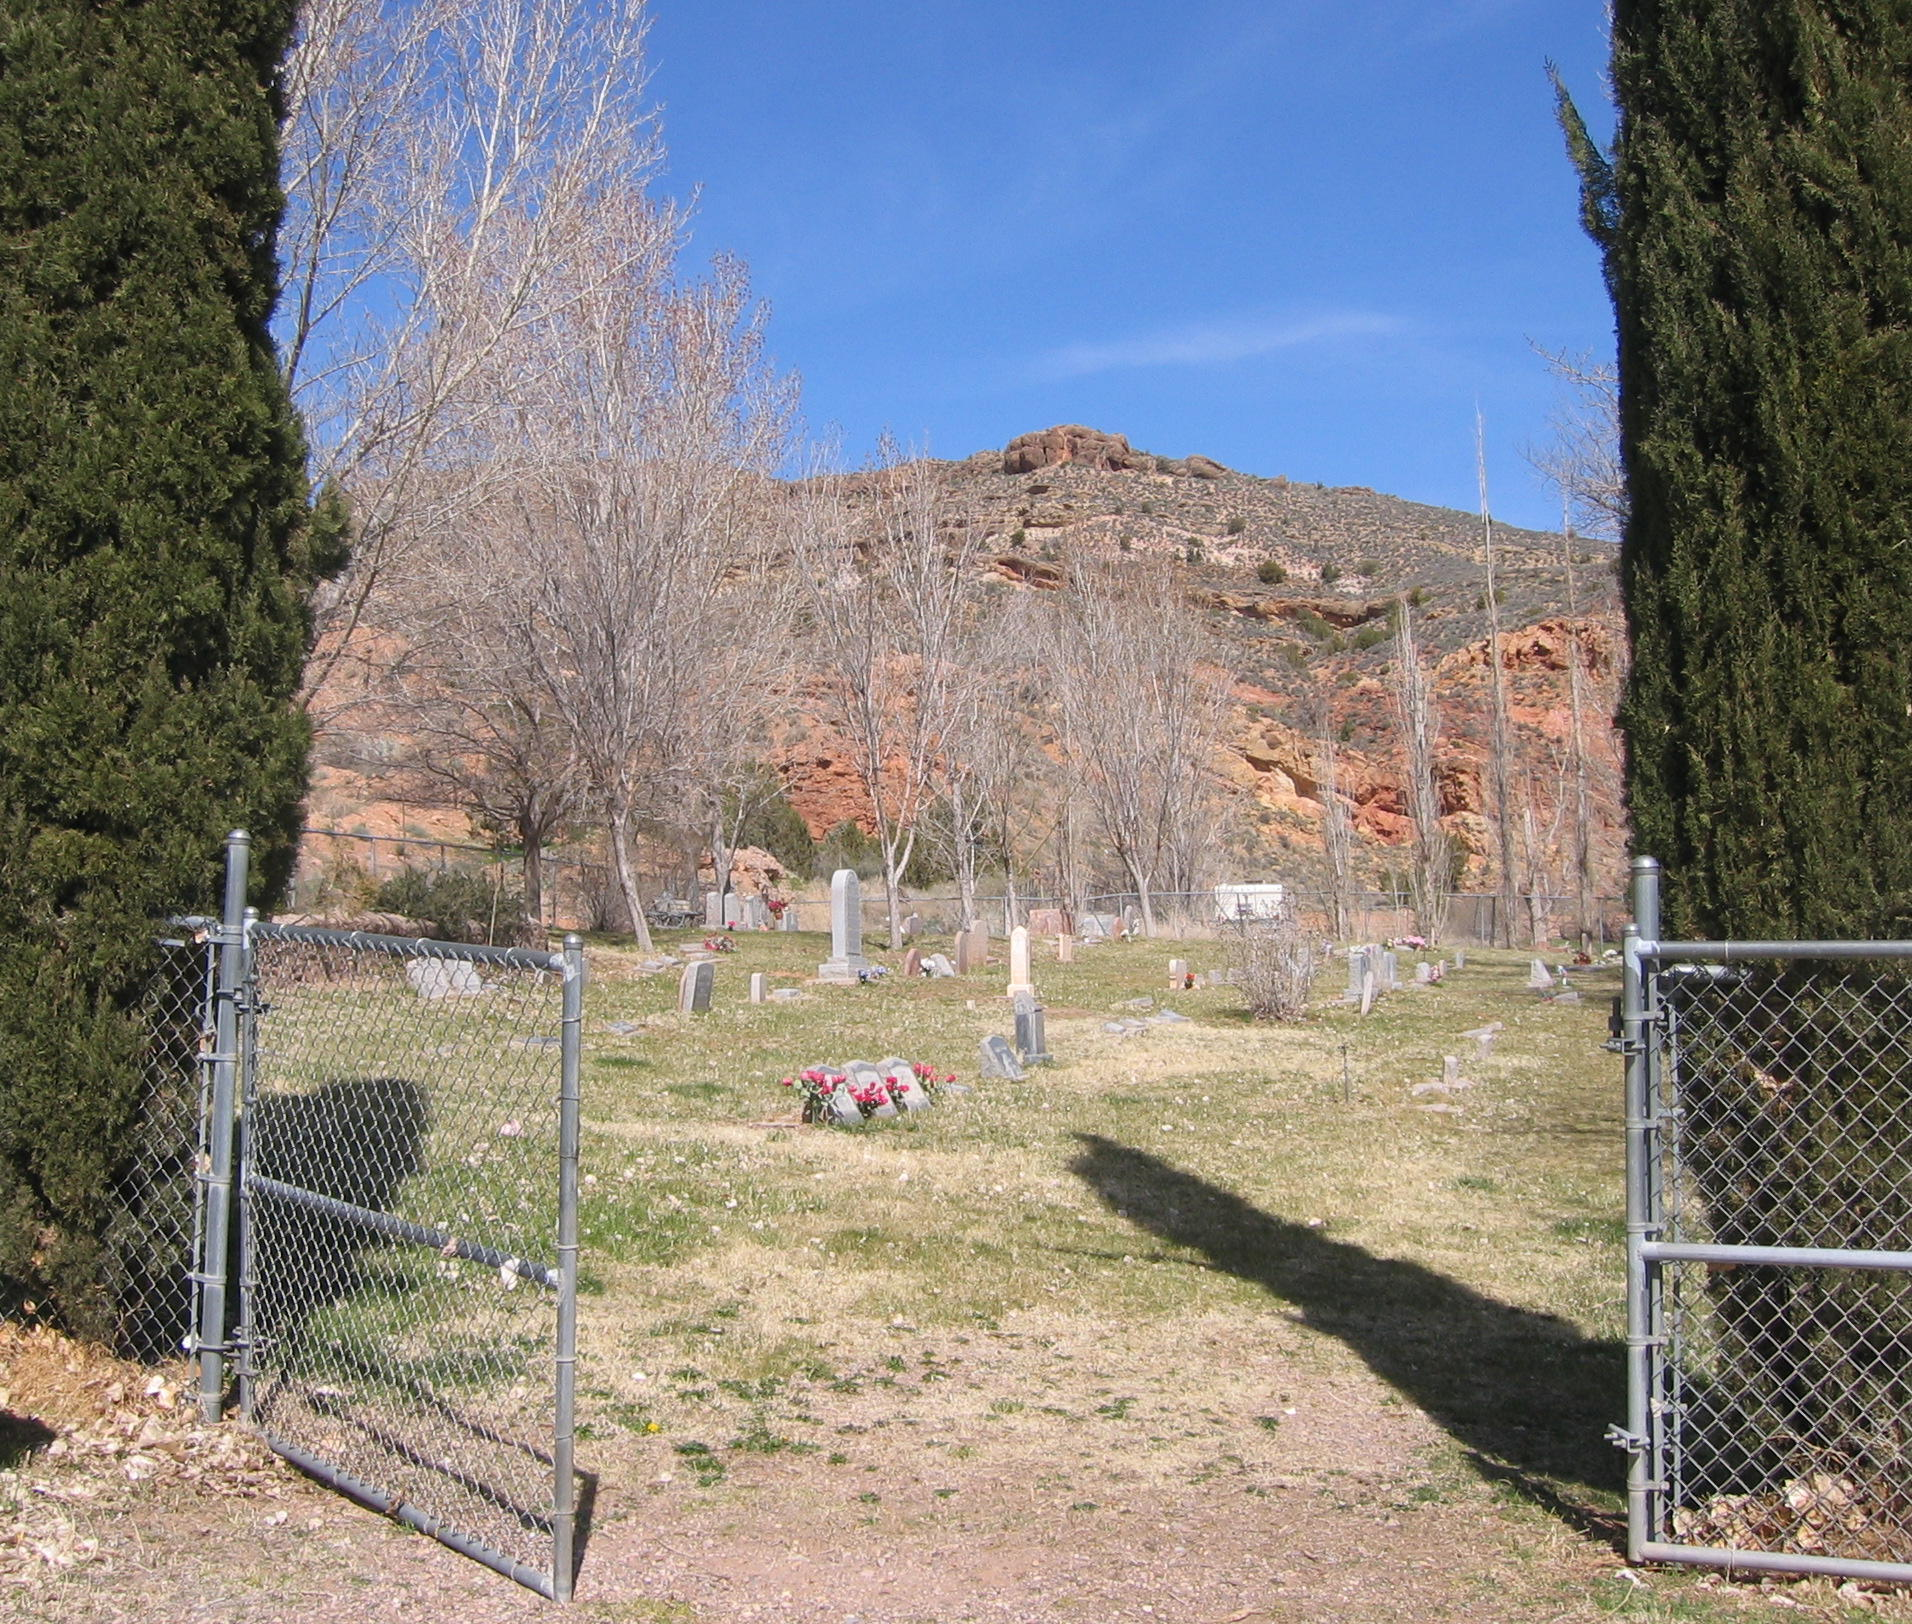 Main gate of the Gunlock Cemetery